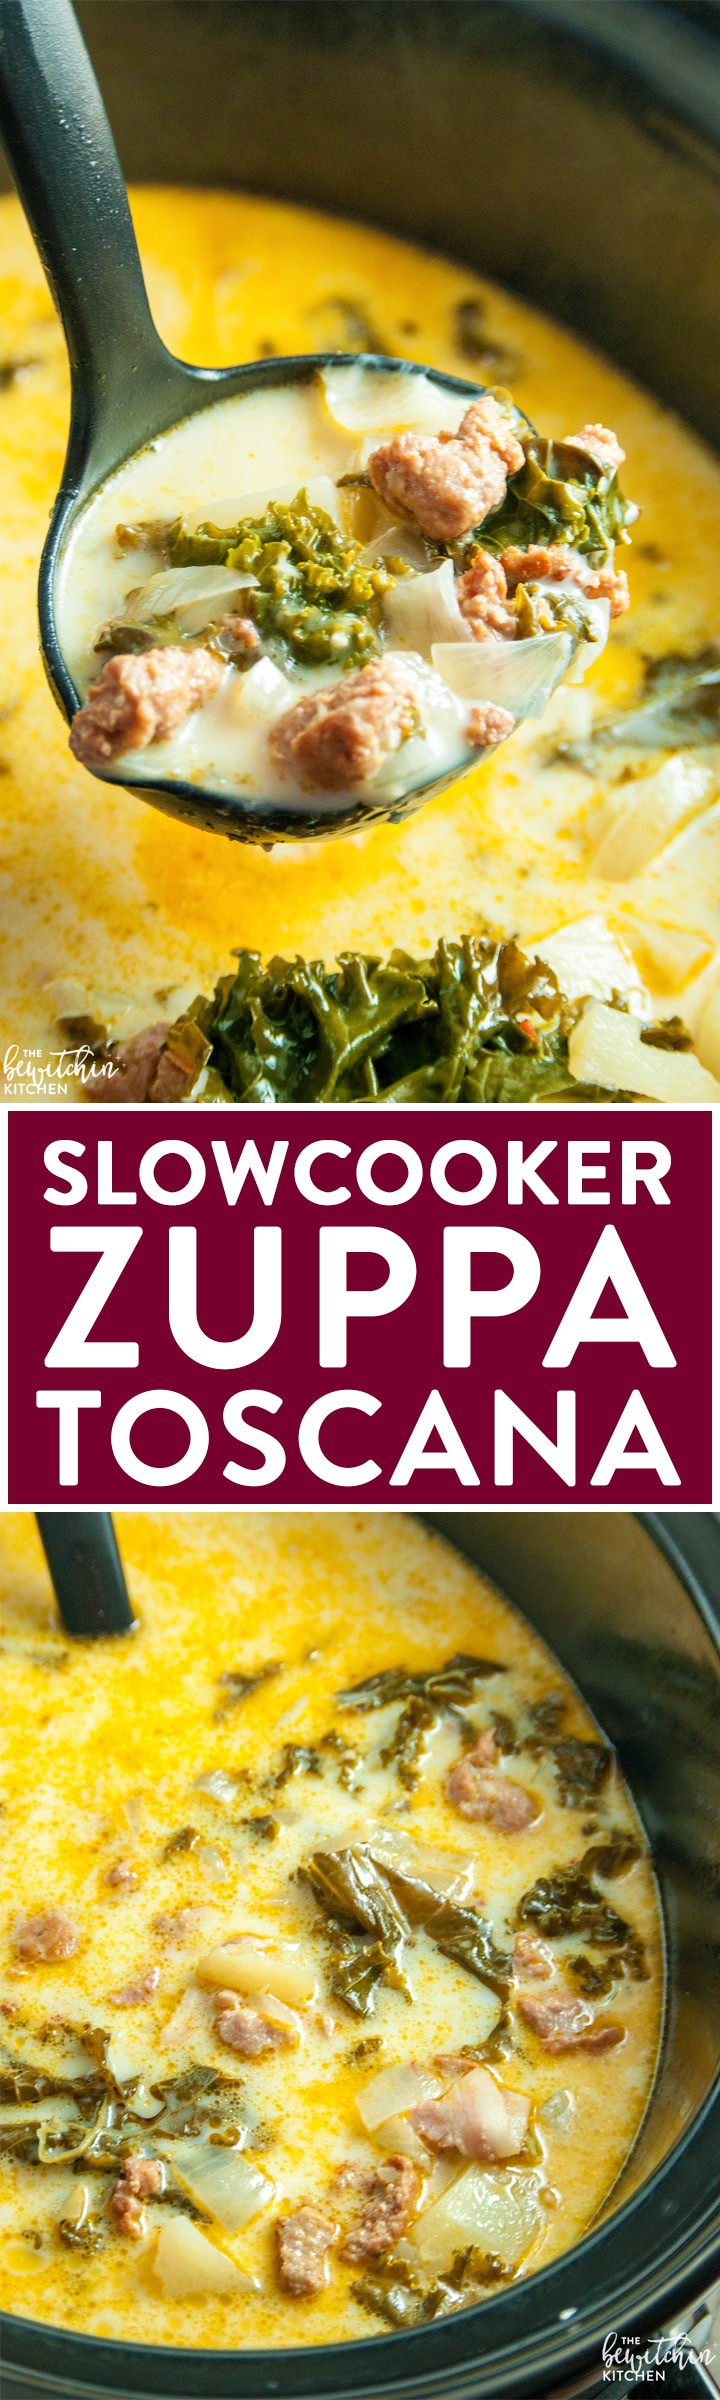 Image Result For Simple And Easy Olive Garden Zuppa Toscana Recipe